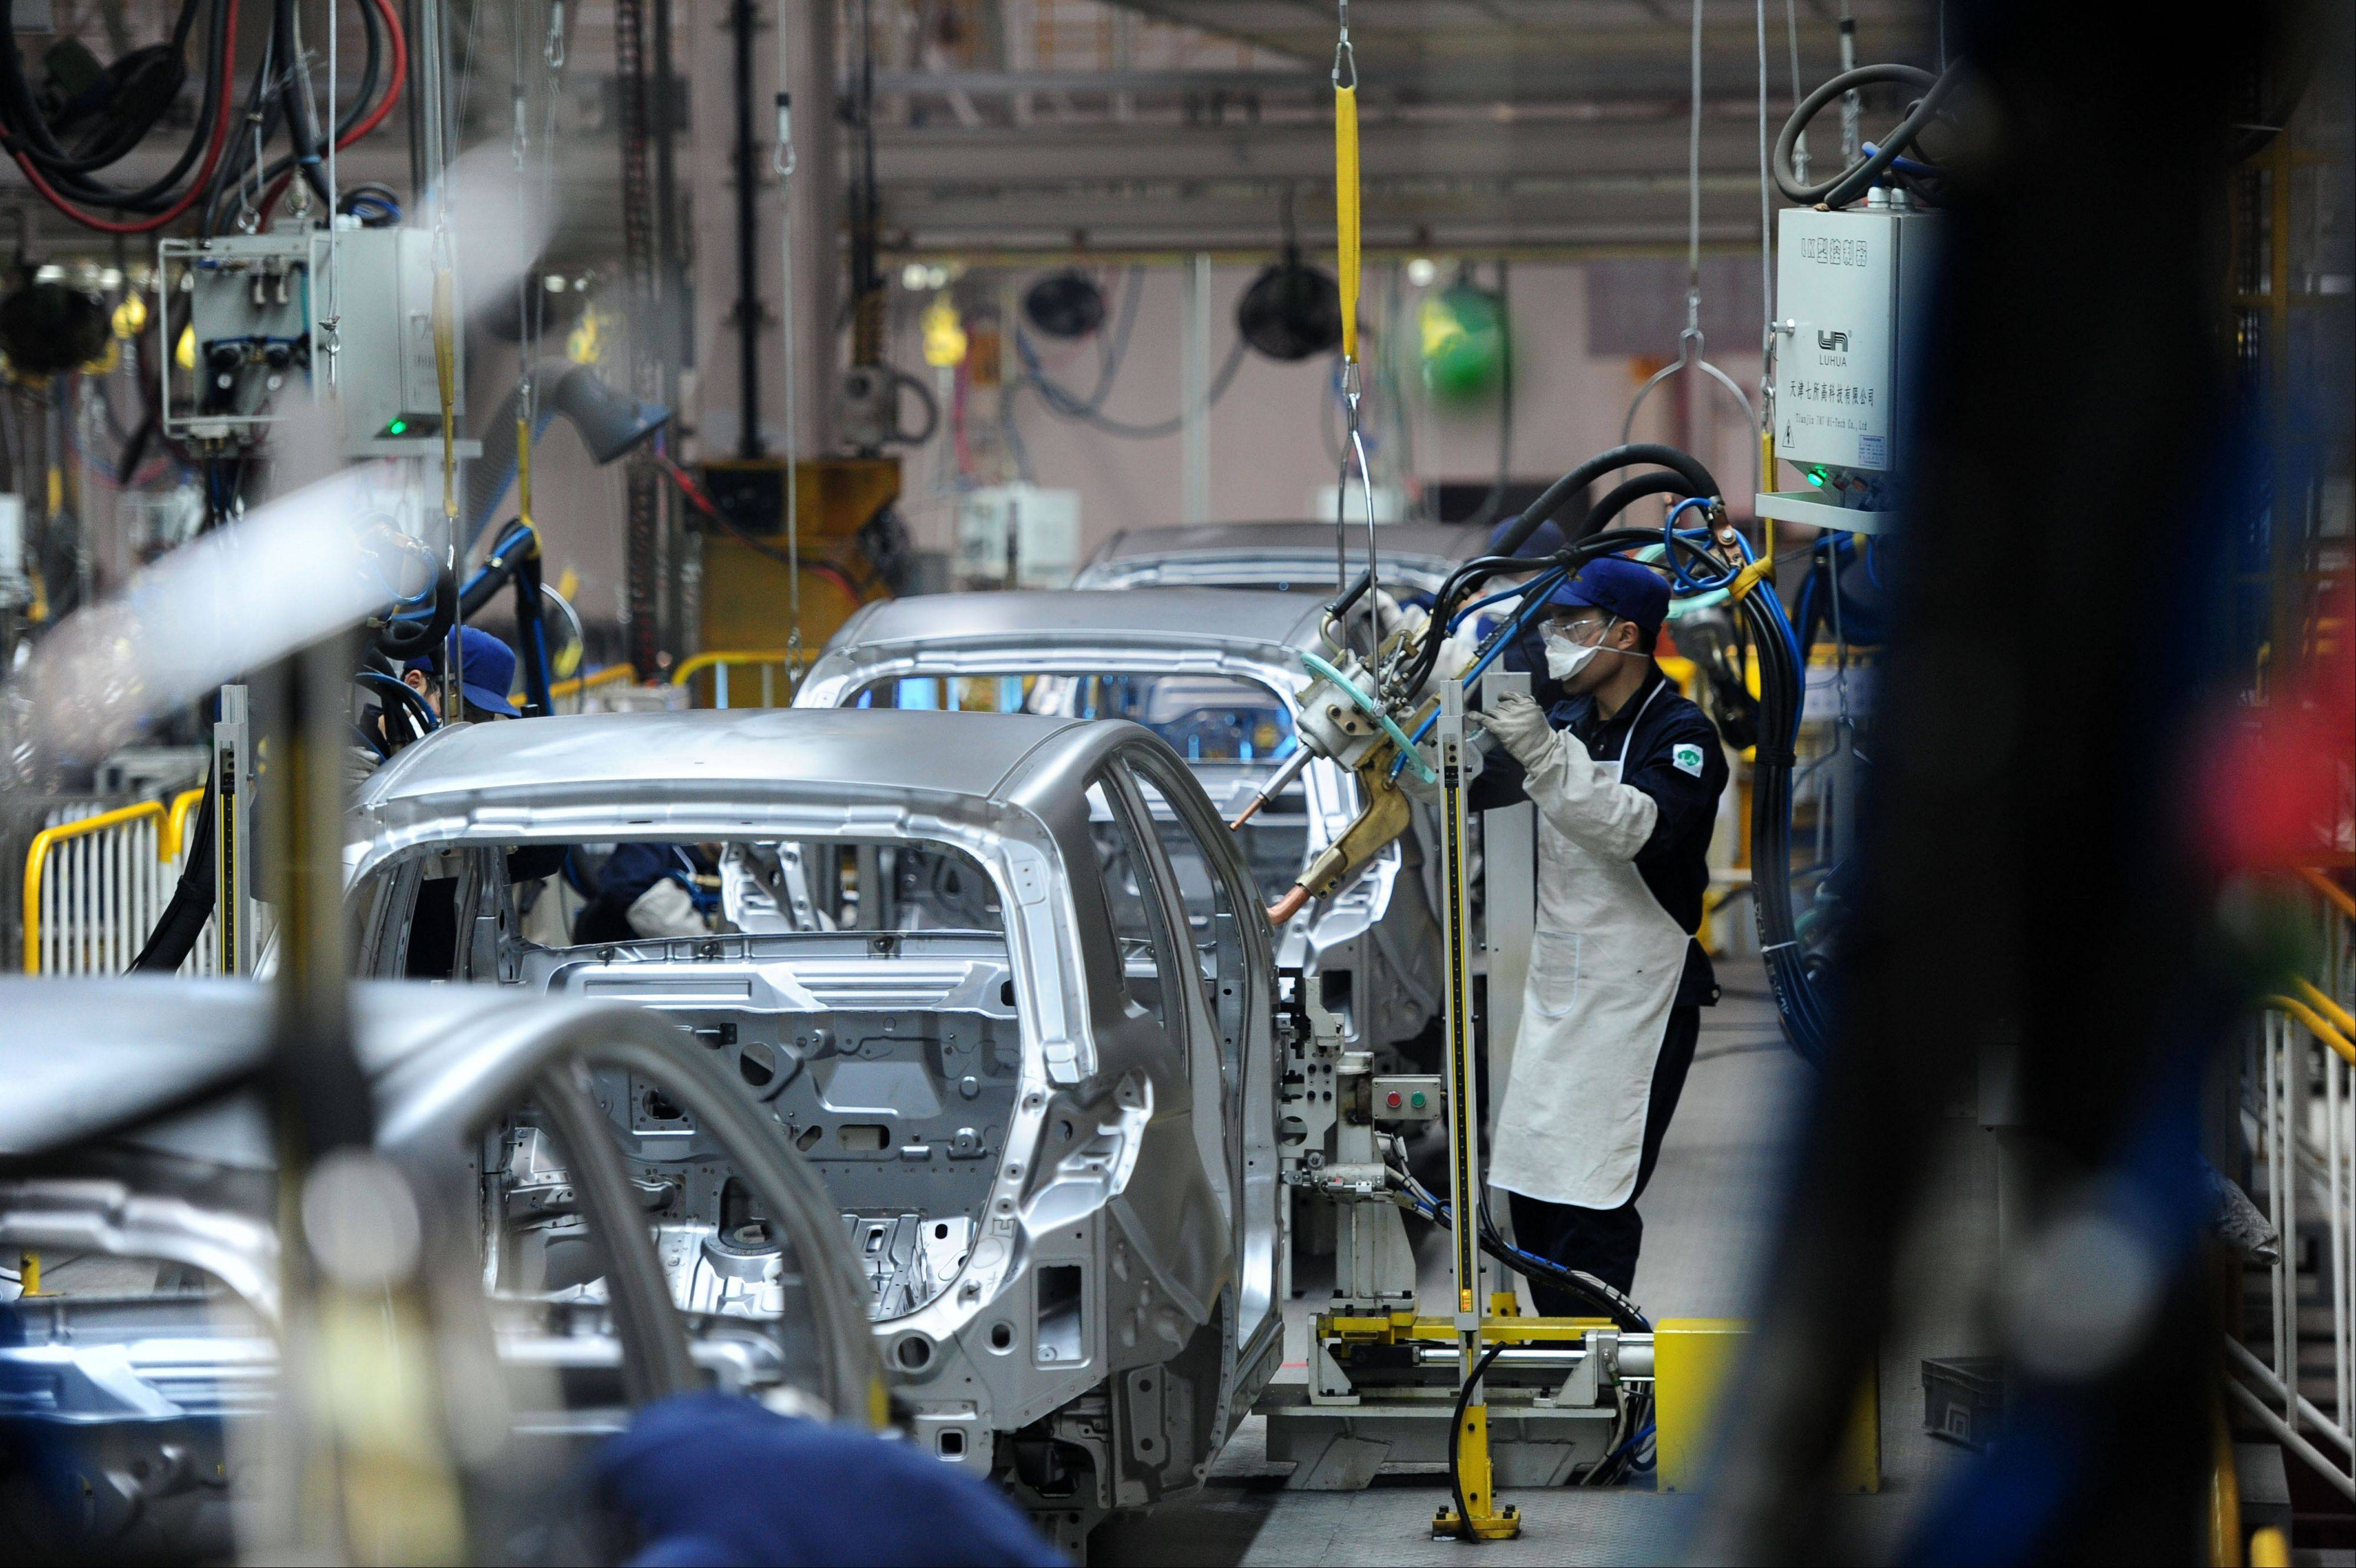 Workers assemble cars at the factory of BAIC Motor Corporation in Zhuzhou in south China's Hunan province. Plagued by uncertainty and fresh setbacks, the world economy has weakened further and will grow more slowly over the next year, the International Monetary Fund says in its latest forecast.